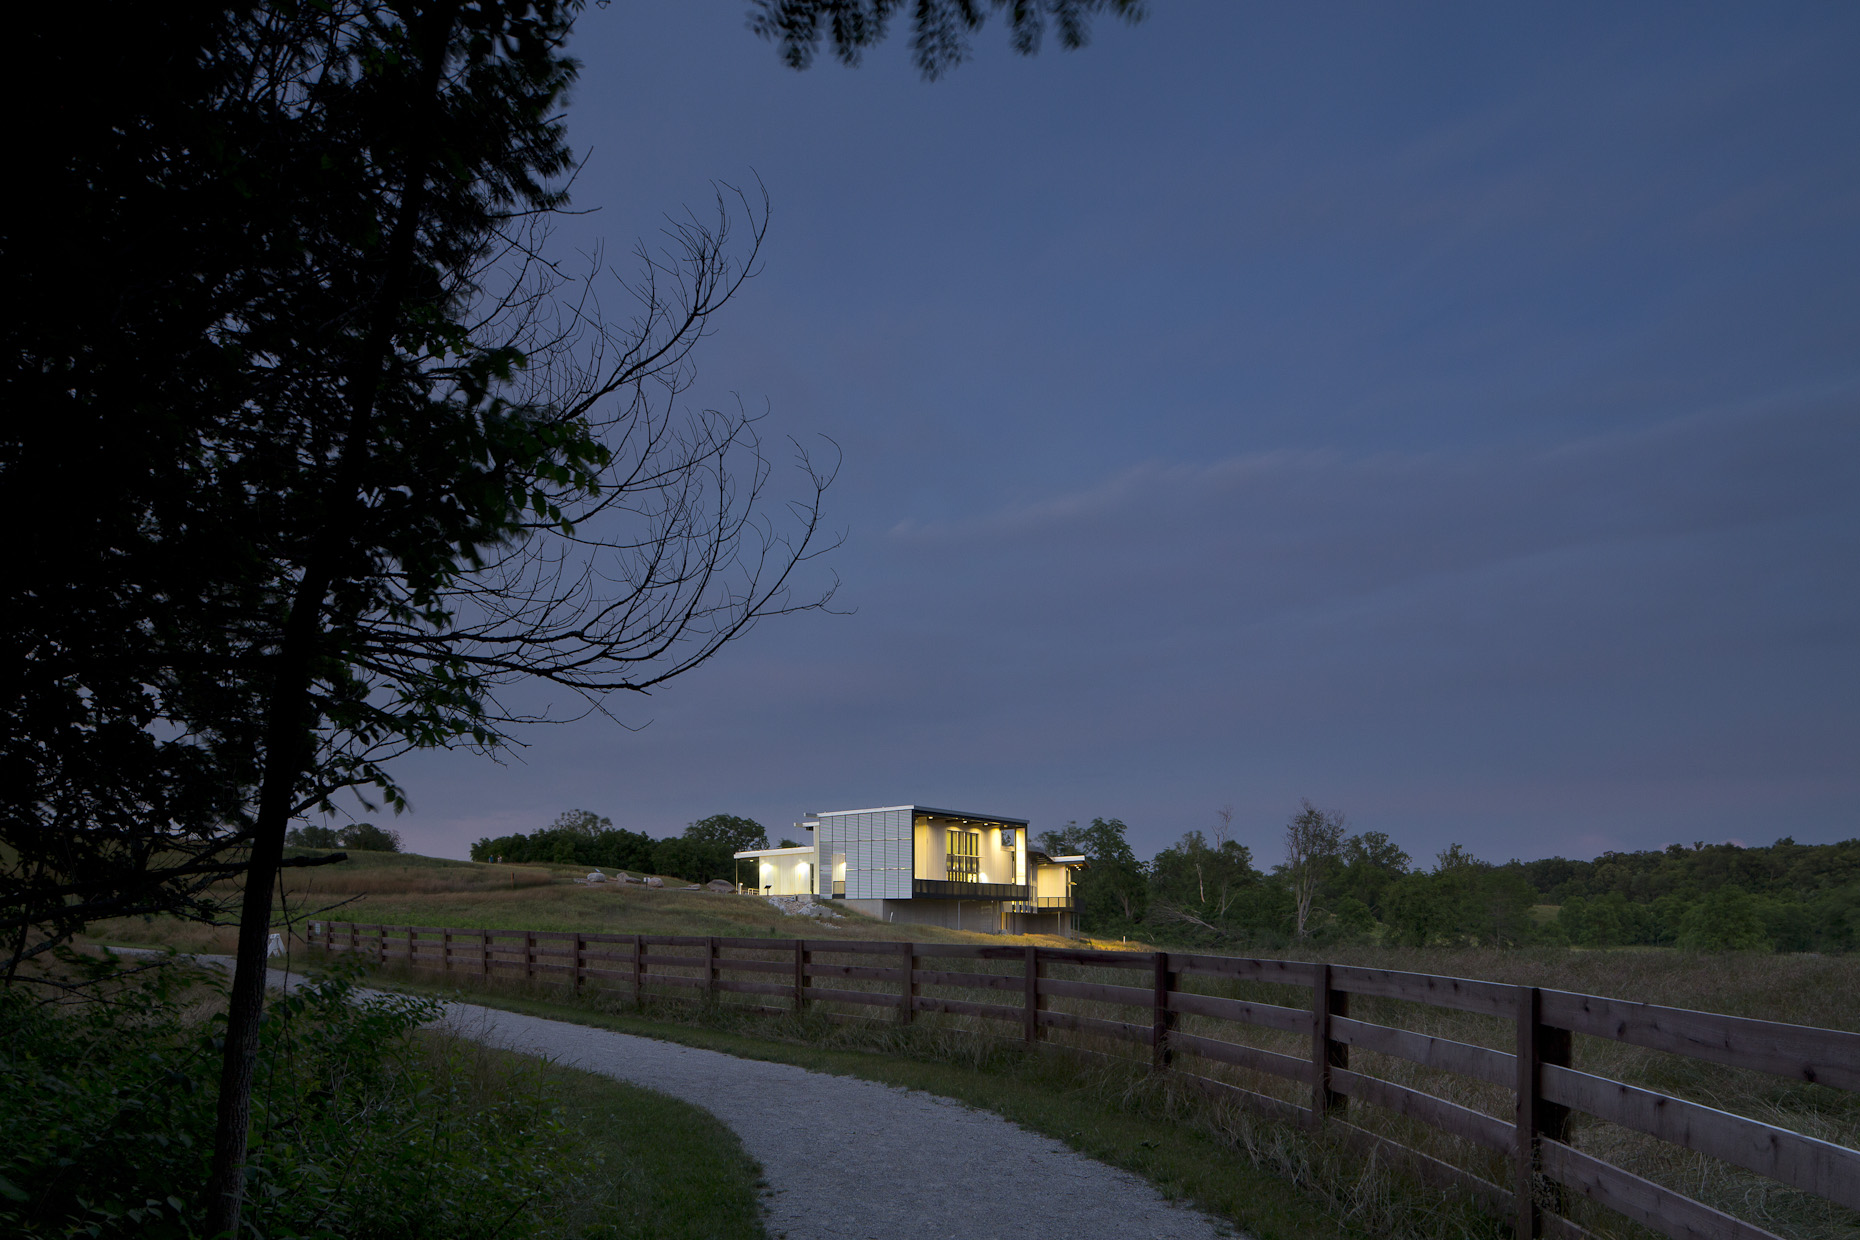 Battelle-Darby Creek Nature Center by DesignGroup photographed by BRad Feinknopf based in Columbus, Ohio